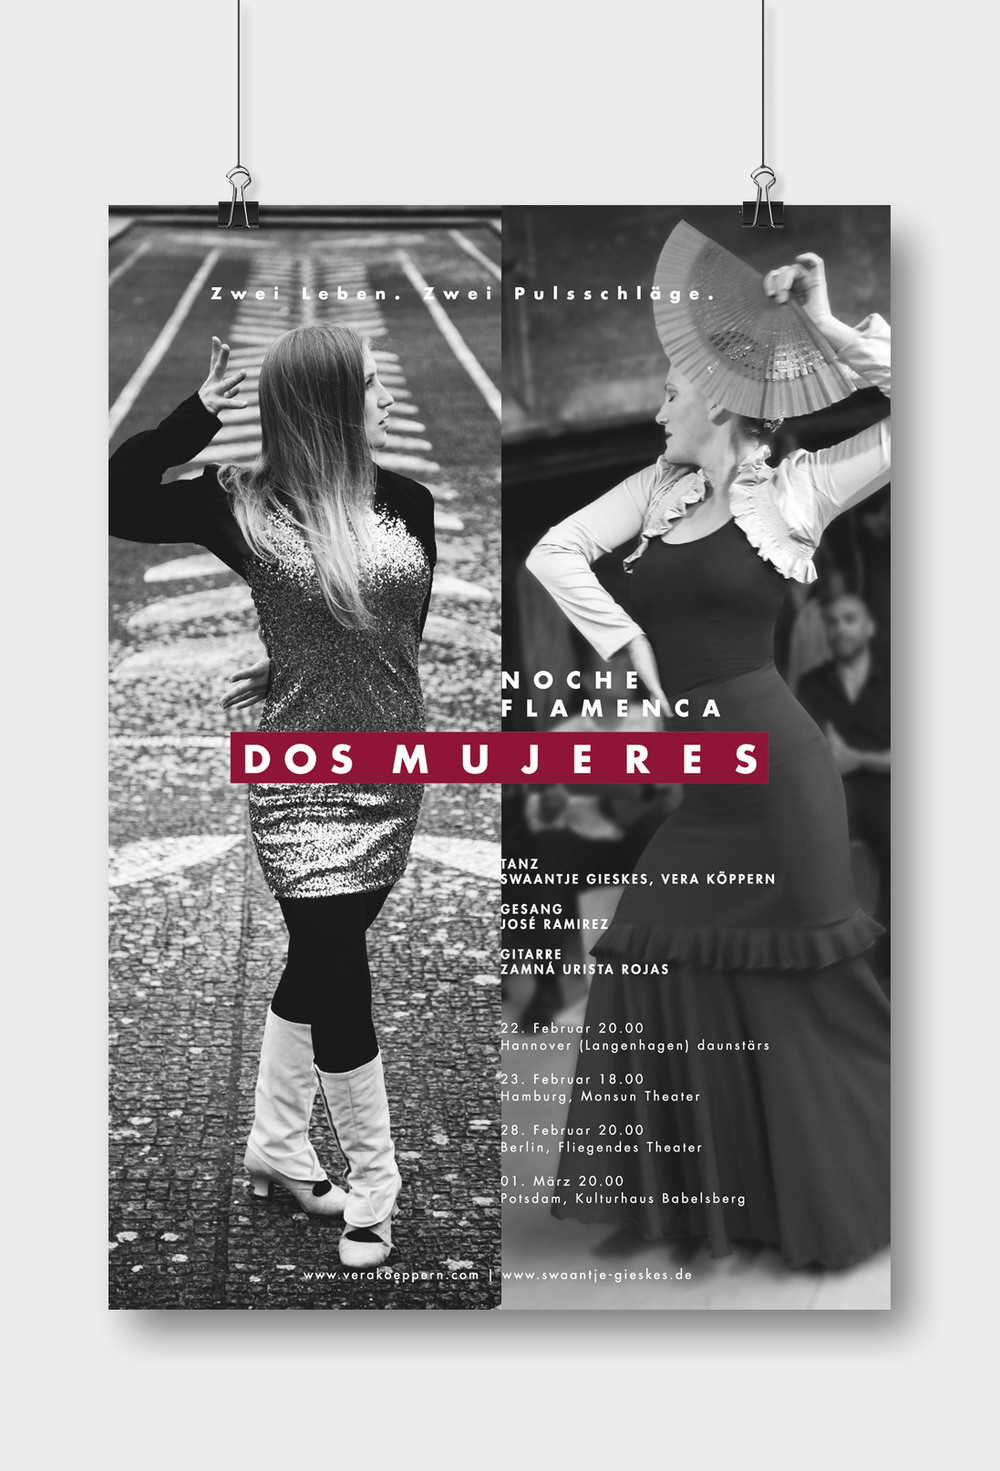 DOS MUJERES – Flamenco performance